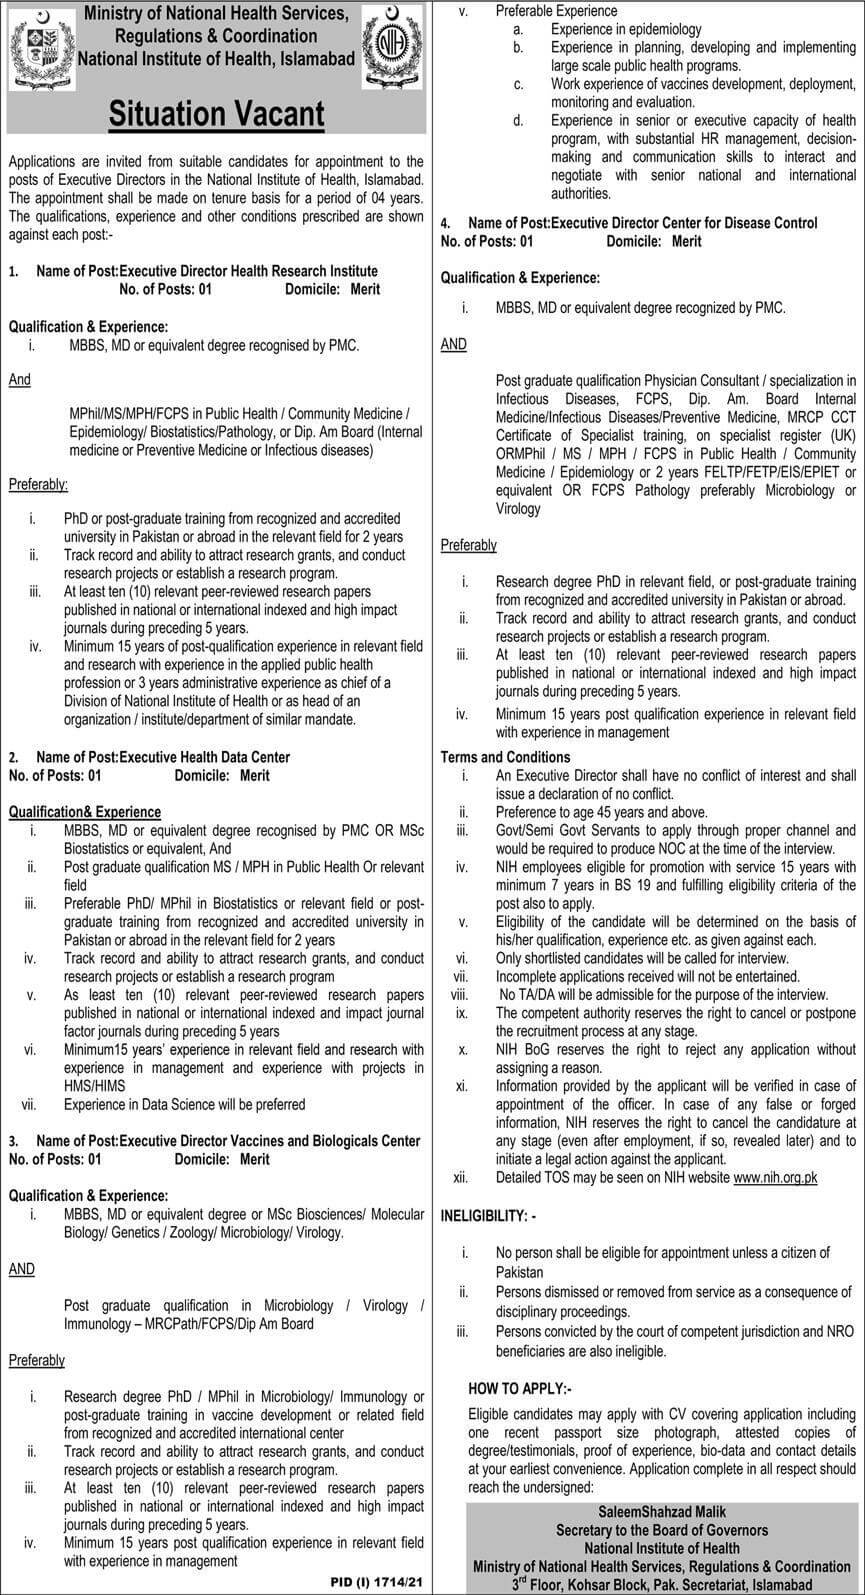 Ministry of National Health Services Regulations & Coordination Jobs 2021 Advertisement